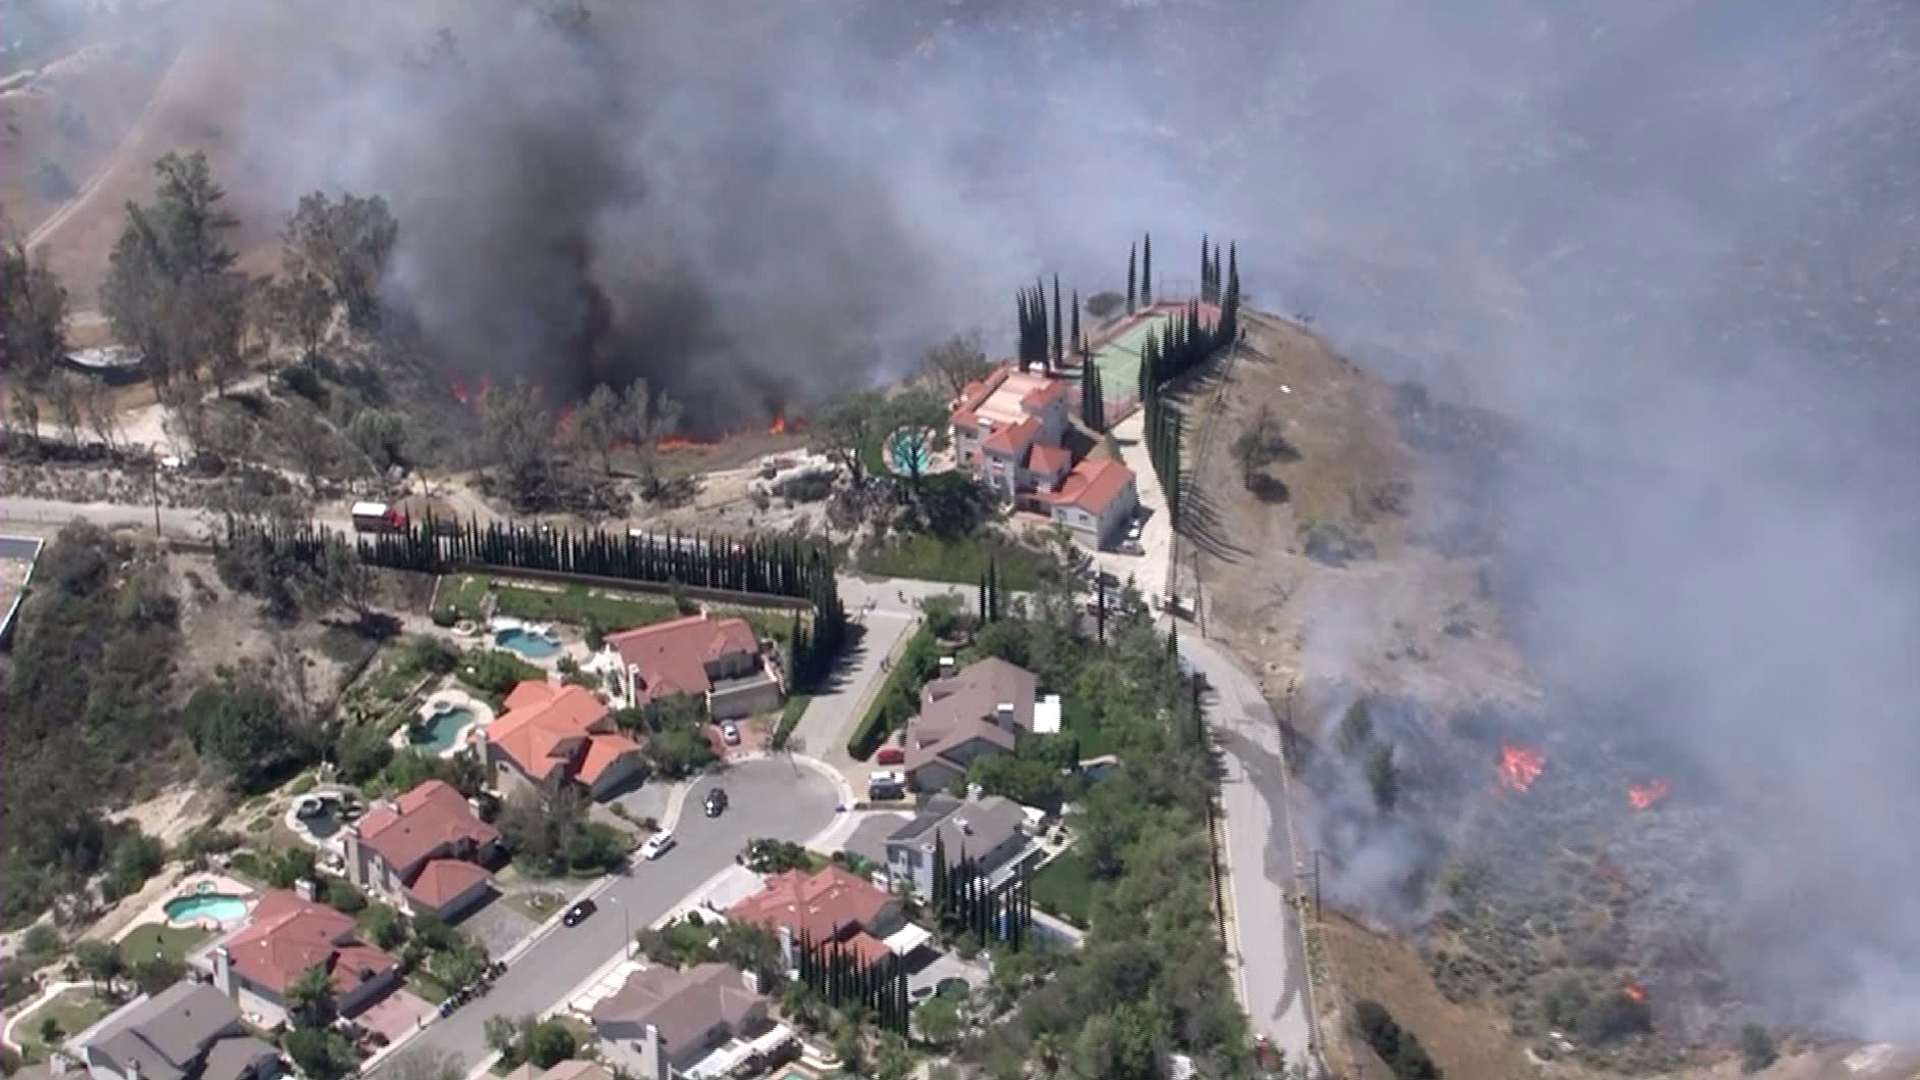 Firefighters Battle 2 Blazes in San Fernando Valley